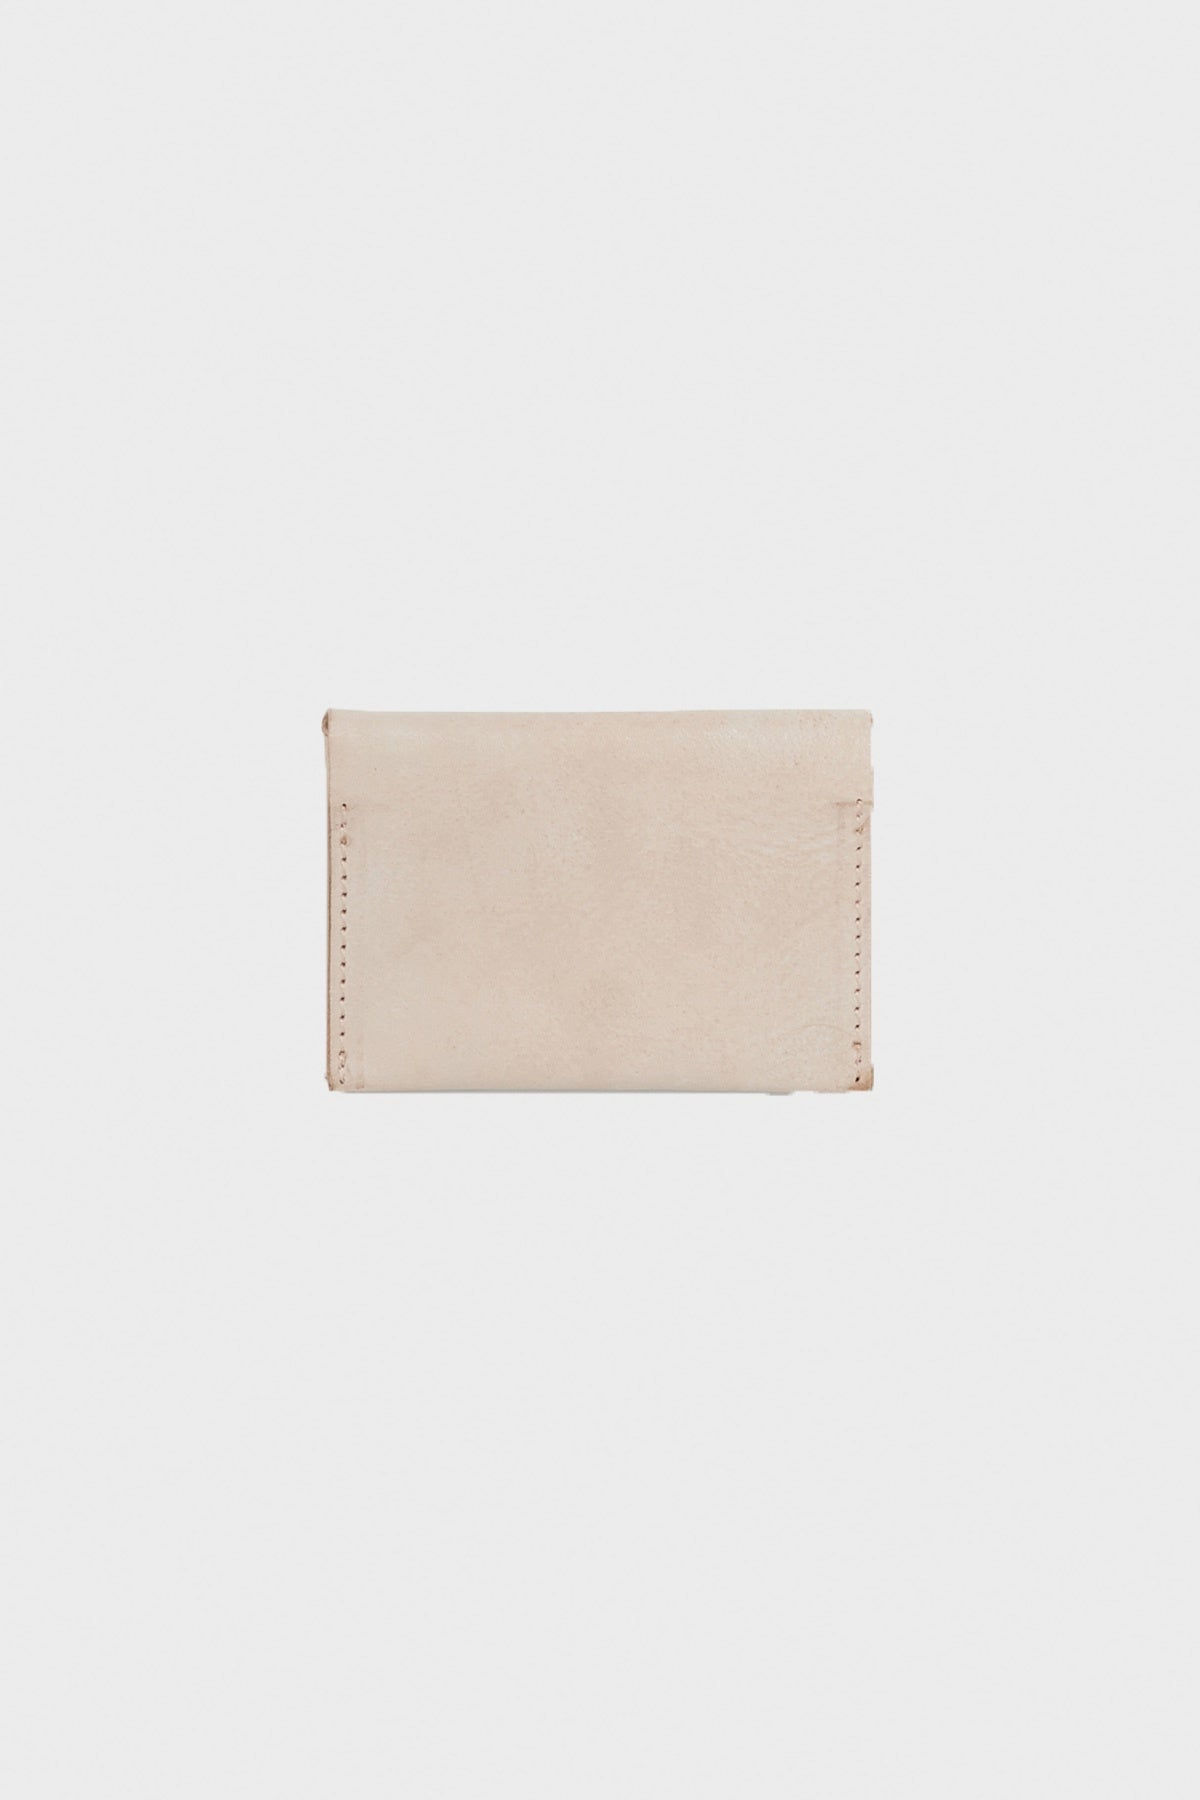 Hender Scheme - Compact Card Case - Ivory - Canoe Club